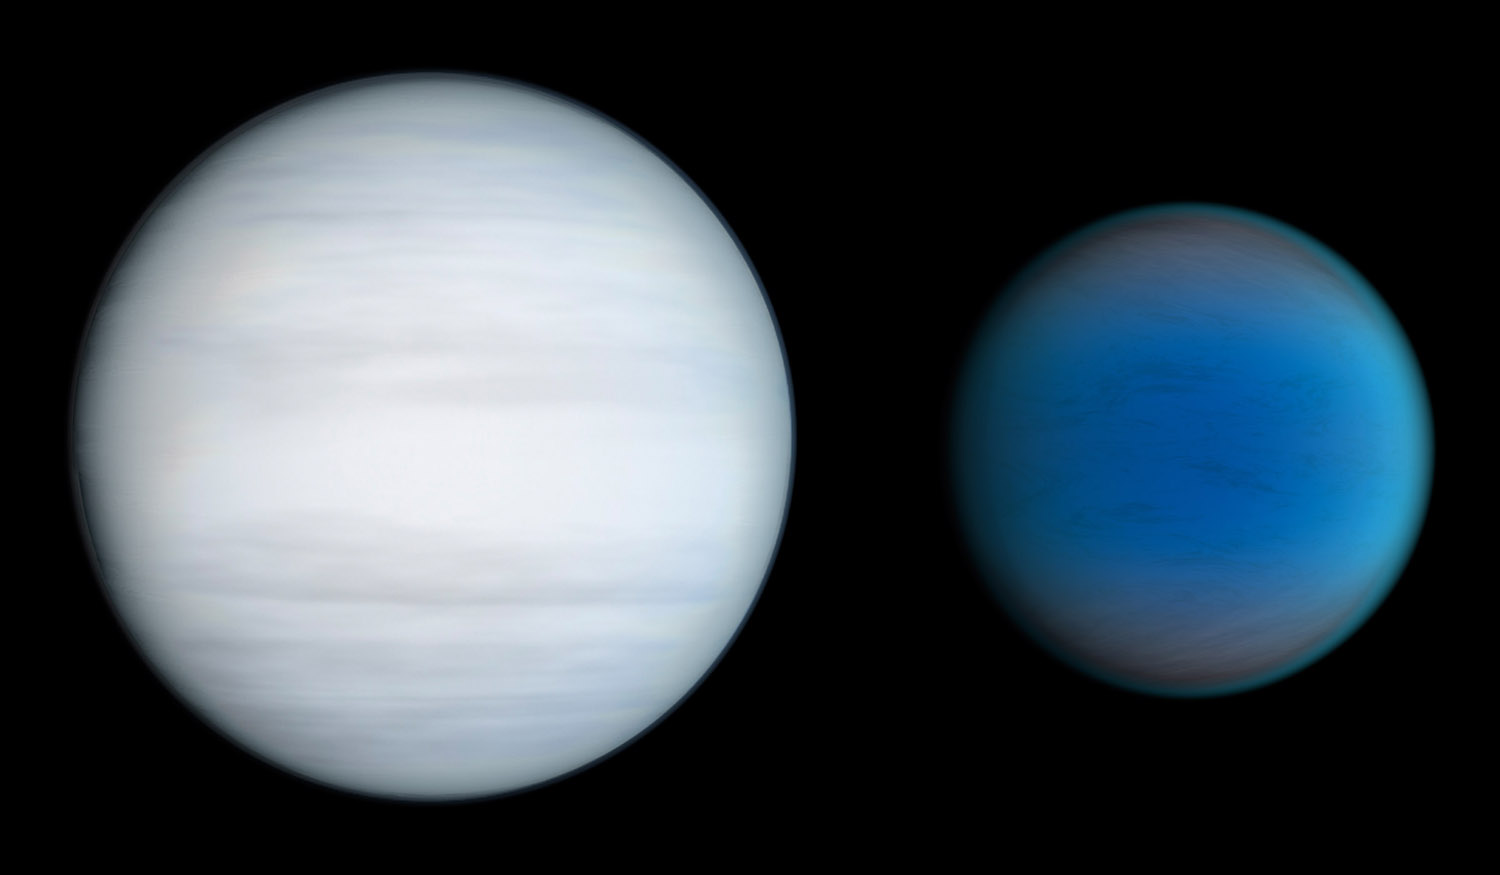 Alien Planets with 2 Suns in Kepler-47